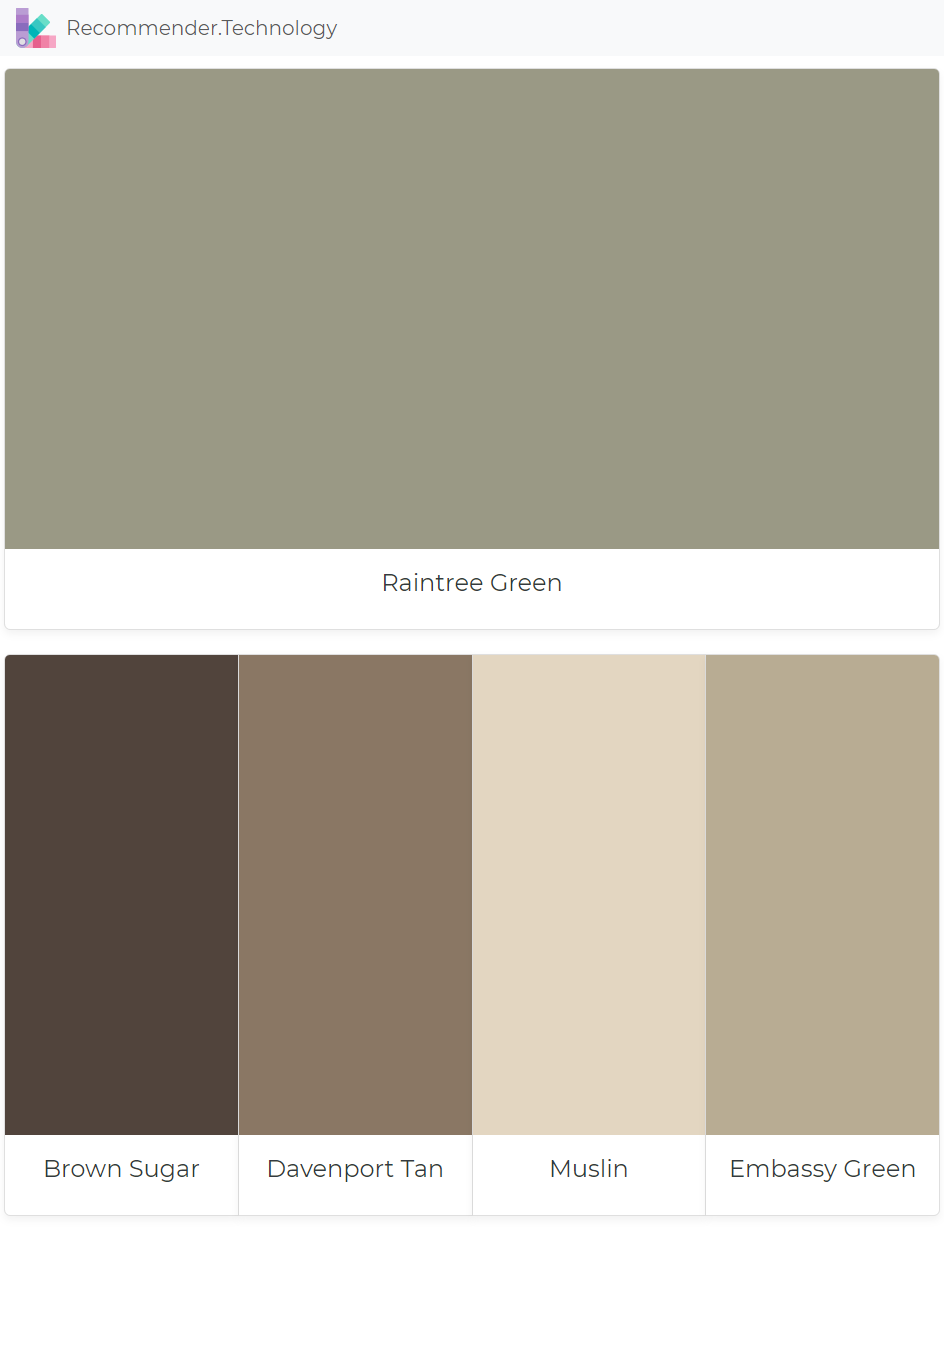 Raintree Green Brown Sugar Davenport Tan Muslin Emby Paint Color Palettes